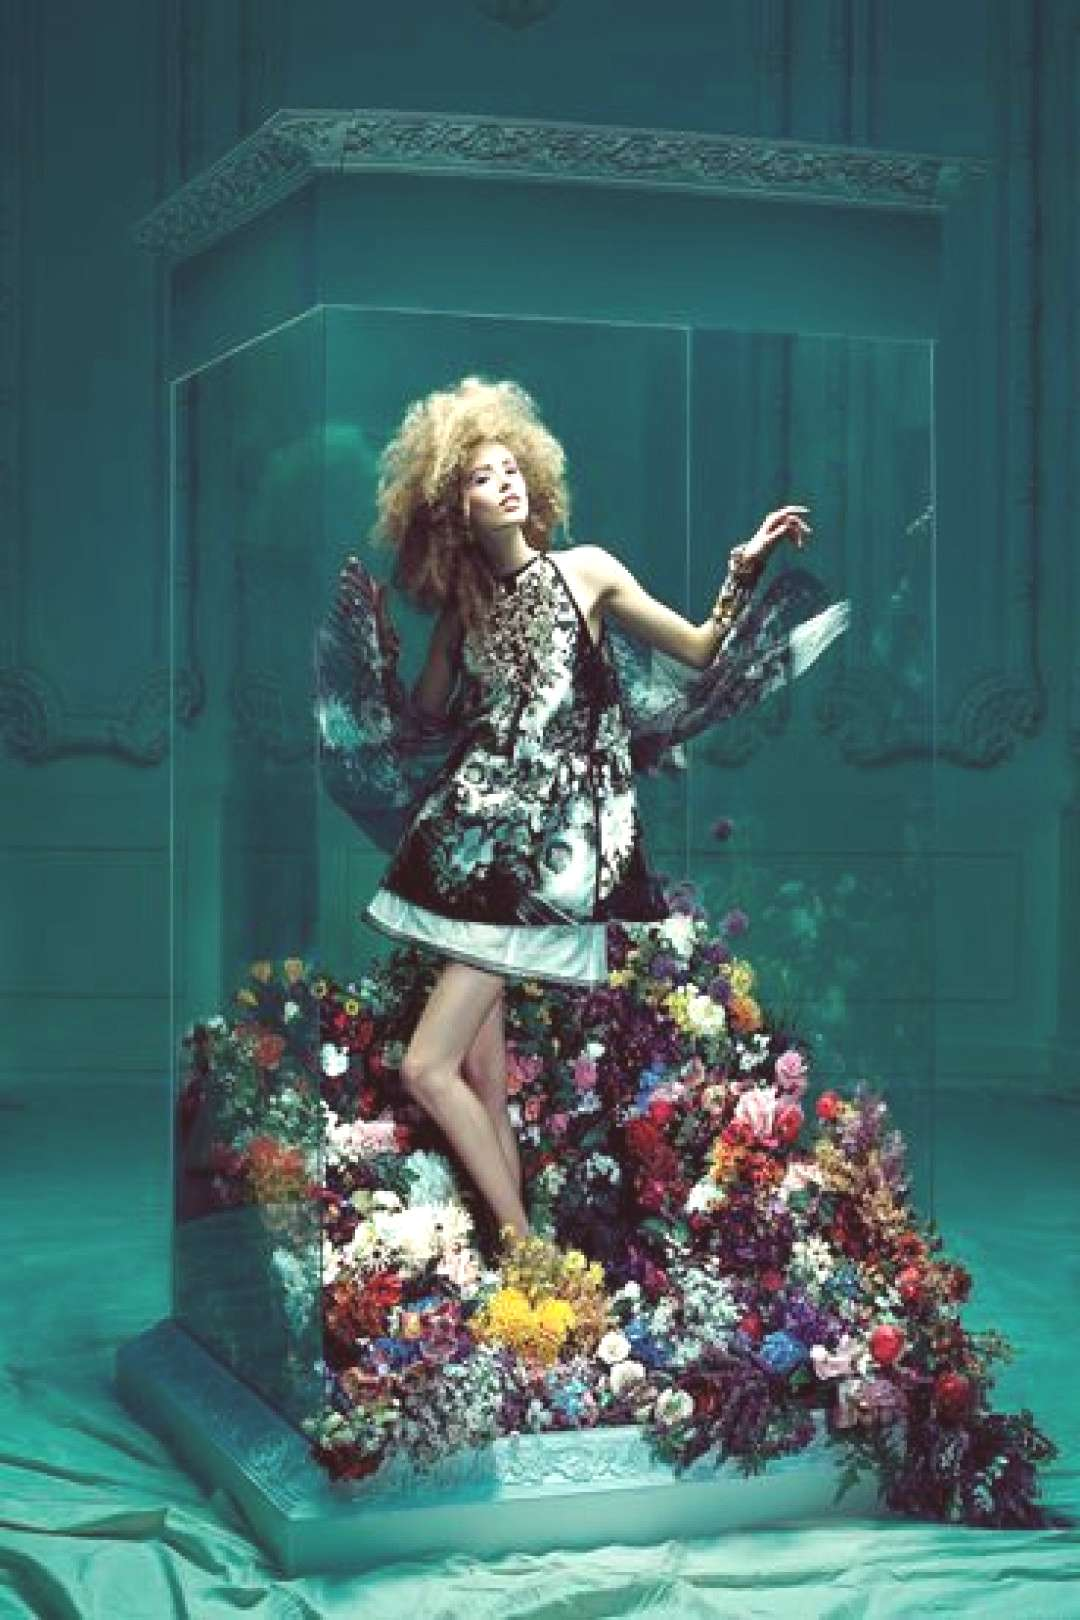 quotA Fancifull Minidress Blossoms Amid a Garden of Petalsquot from the editorial quotFan...#blossoms